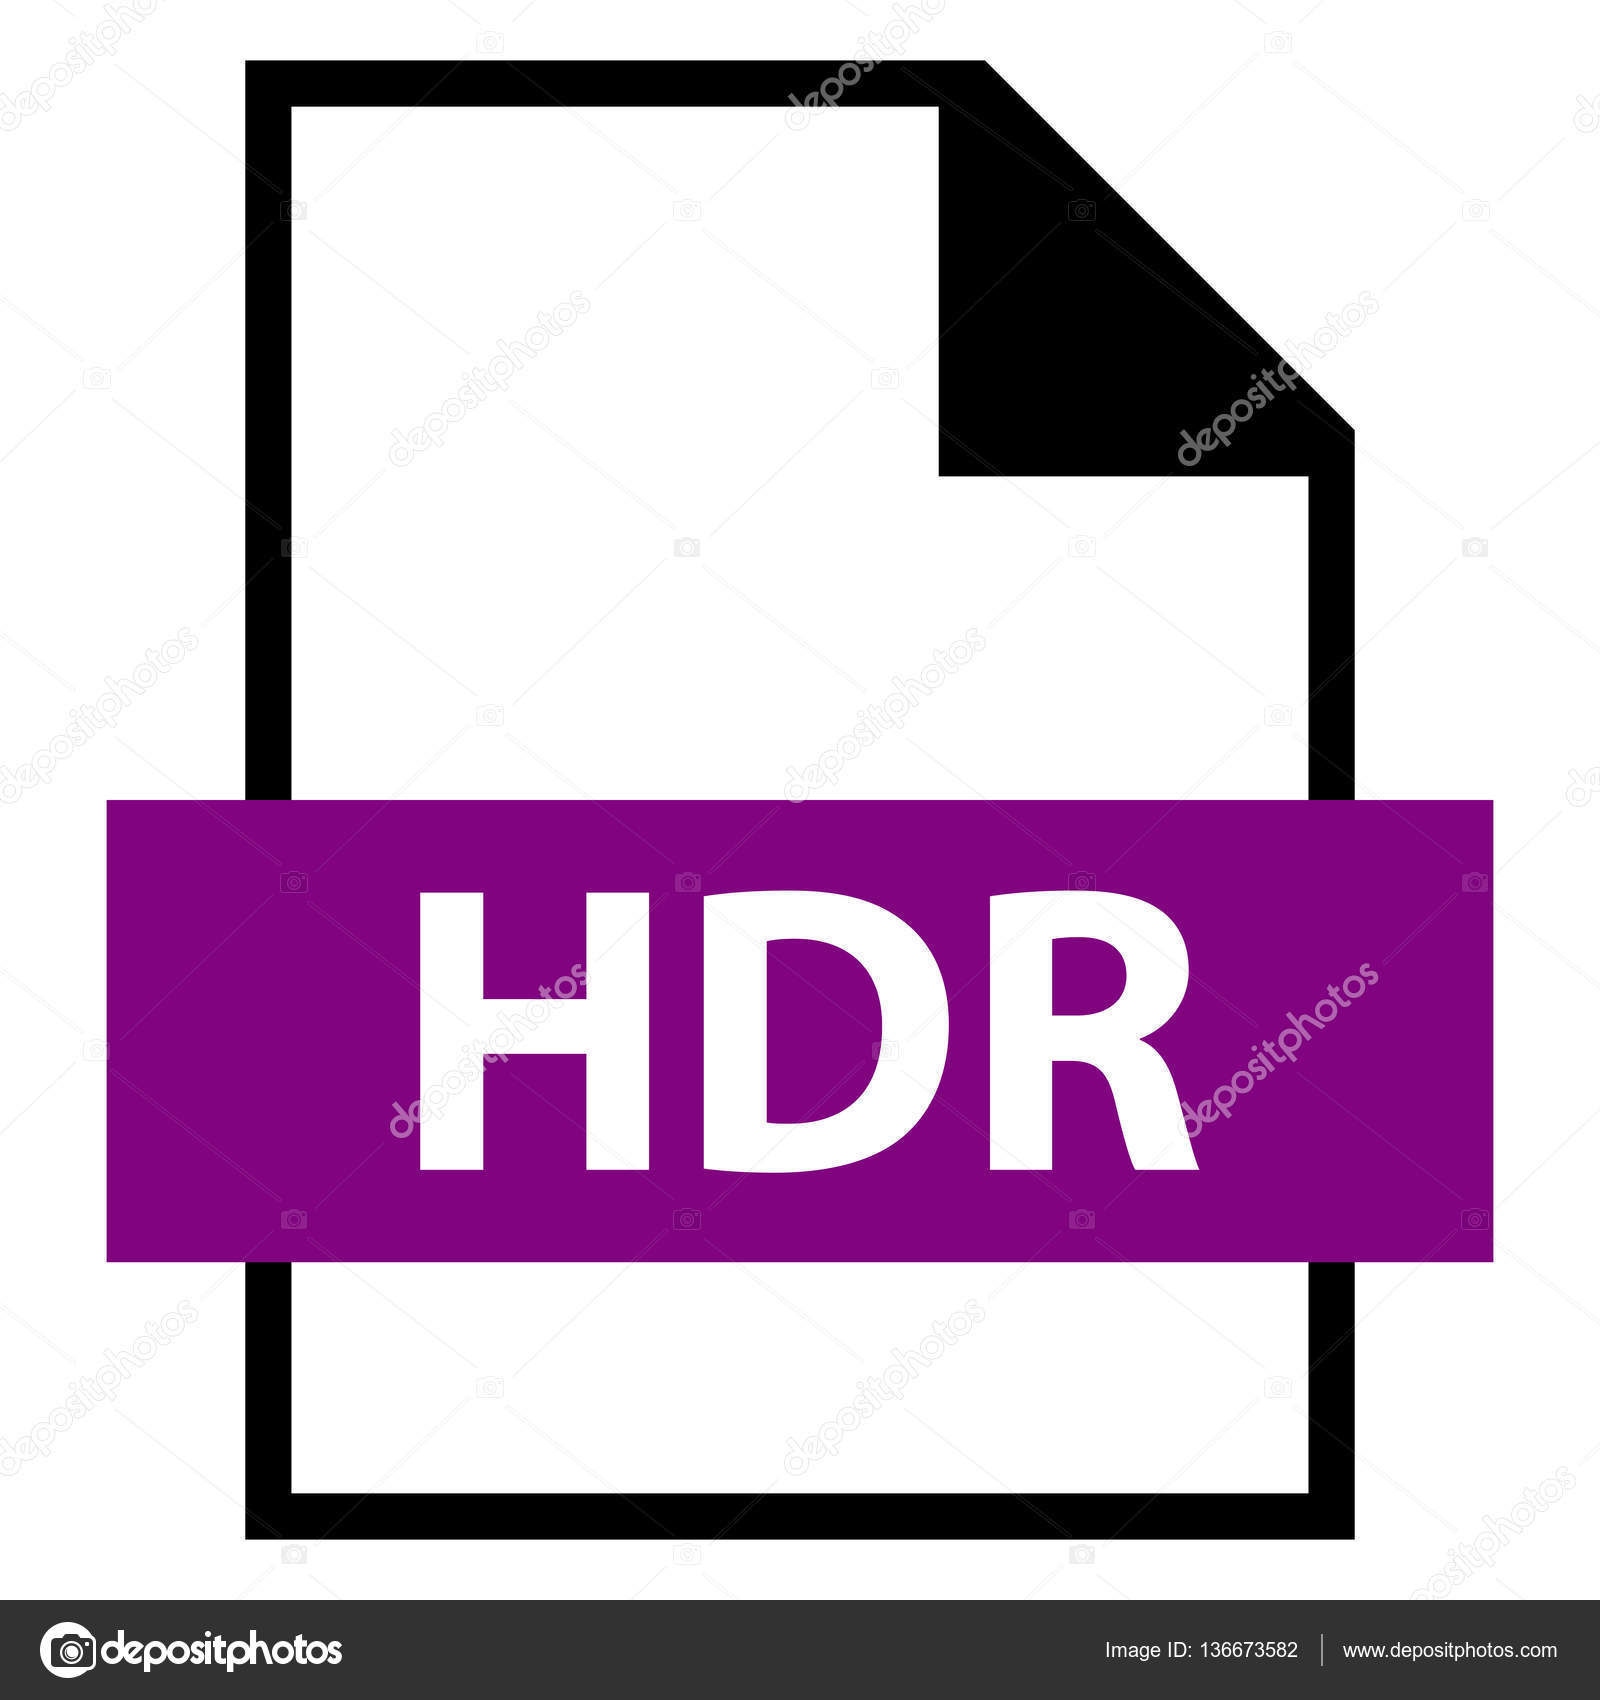 file name extension hdr type stock vector ifeelgood 136673582 rh depositphotos com file extension hdrproject file extension hds